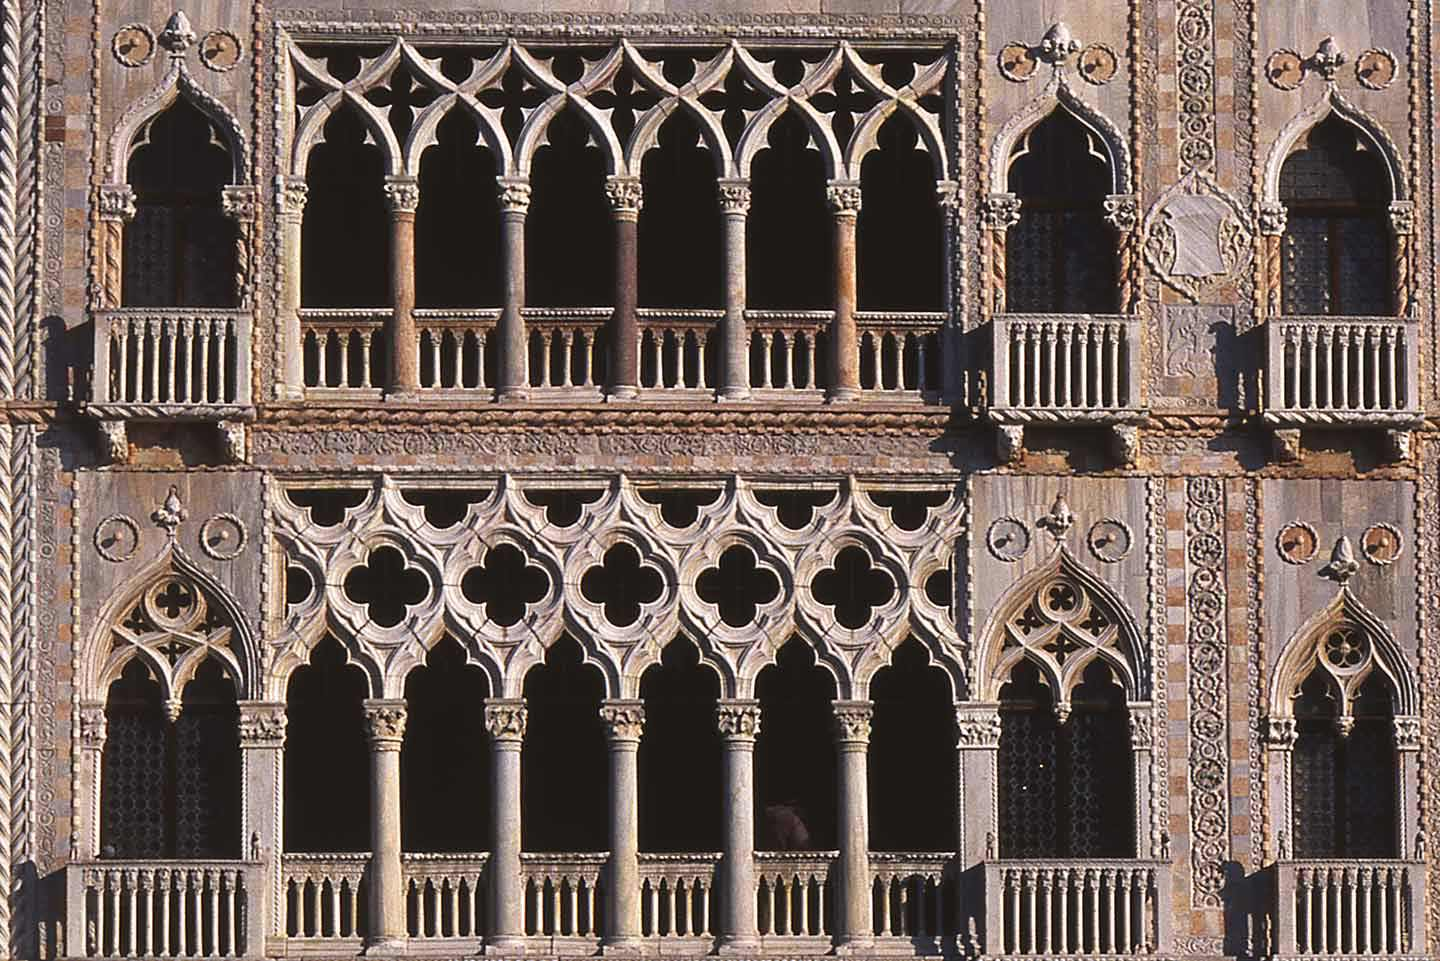 Image of the facade of Ca' d'Oro palace, Venice